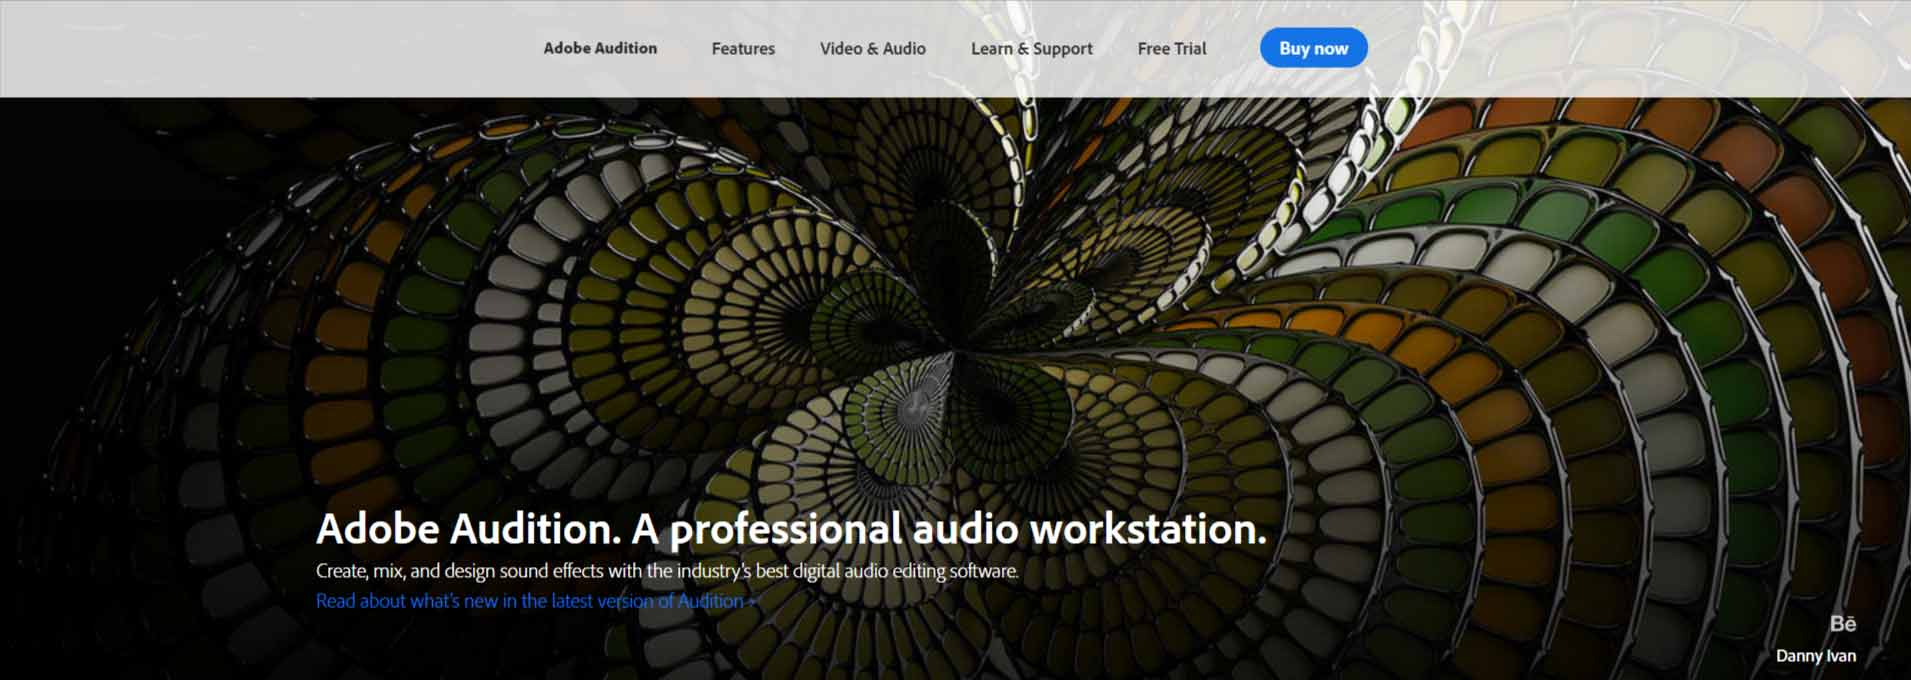 Adobe Audition Best Podcast Software For Mac